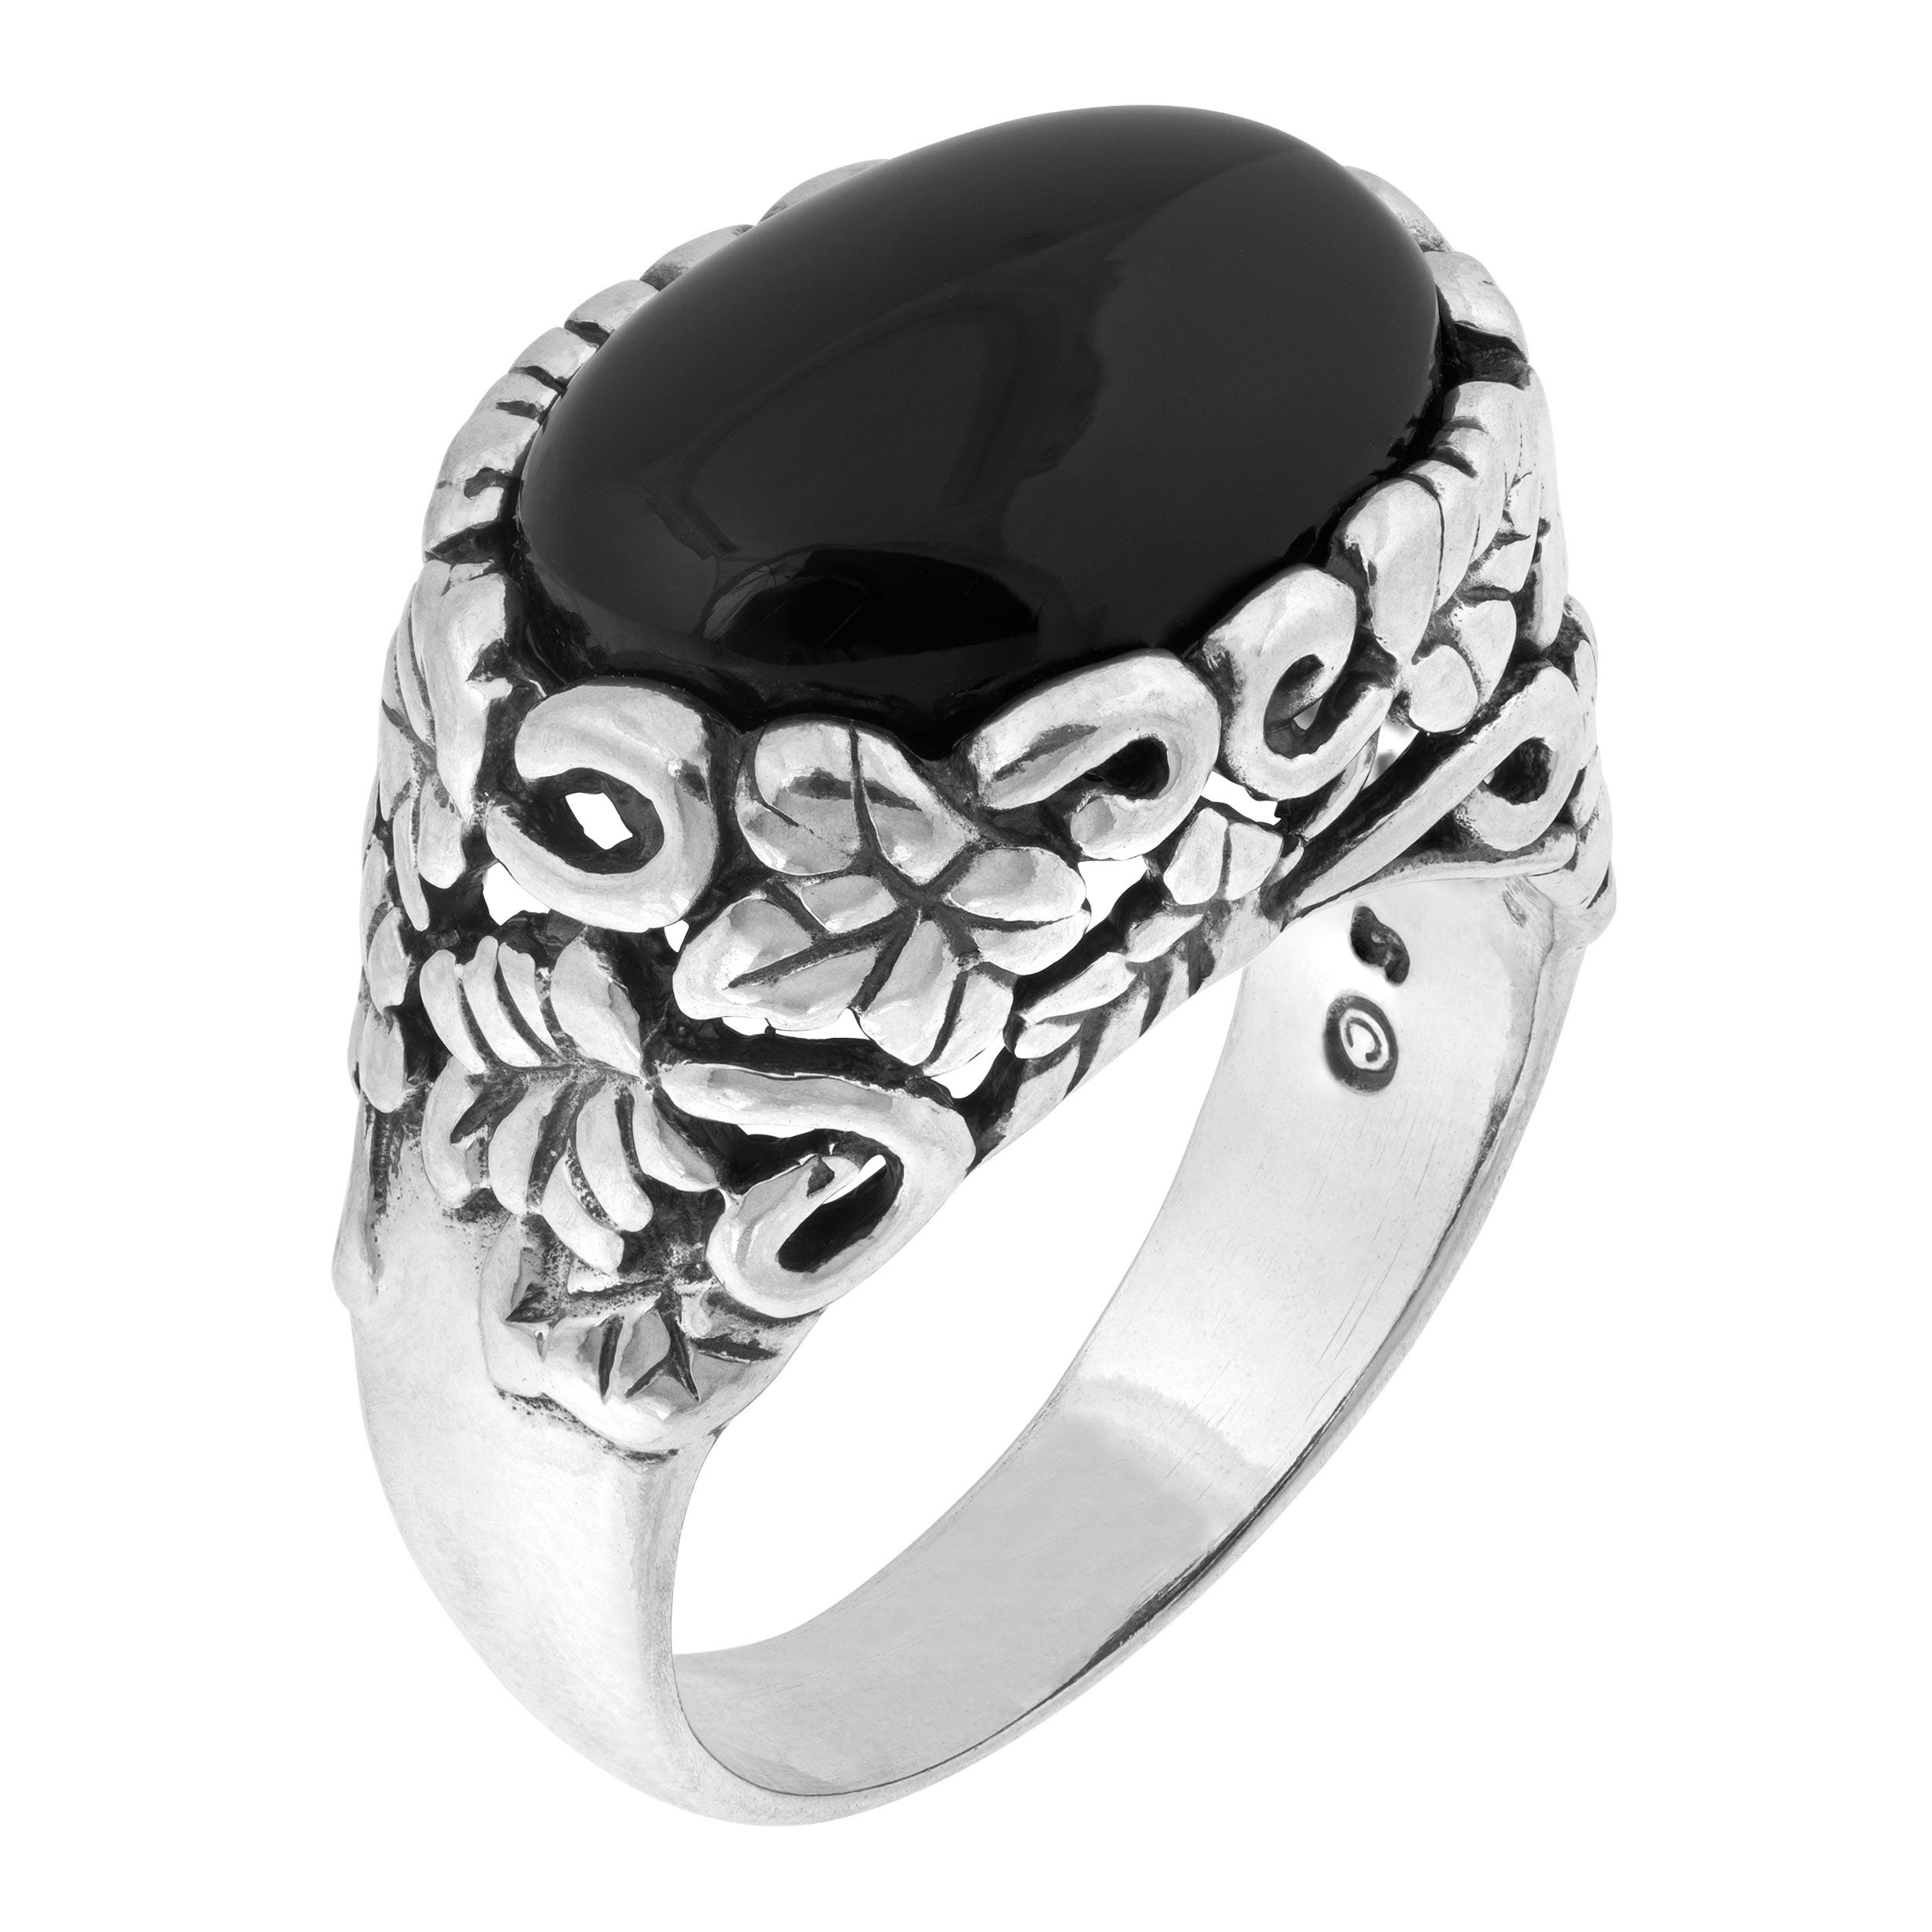 HIGH FINISH BLACK ONYX FASHION JEWELRY .925 SILVER PLATED RING 9 S22936